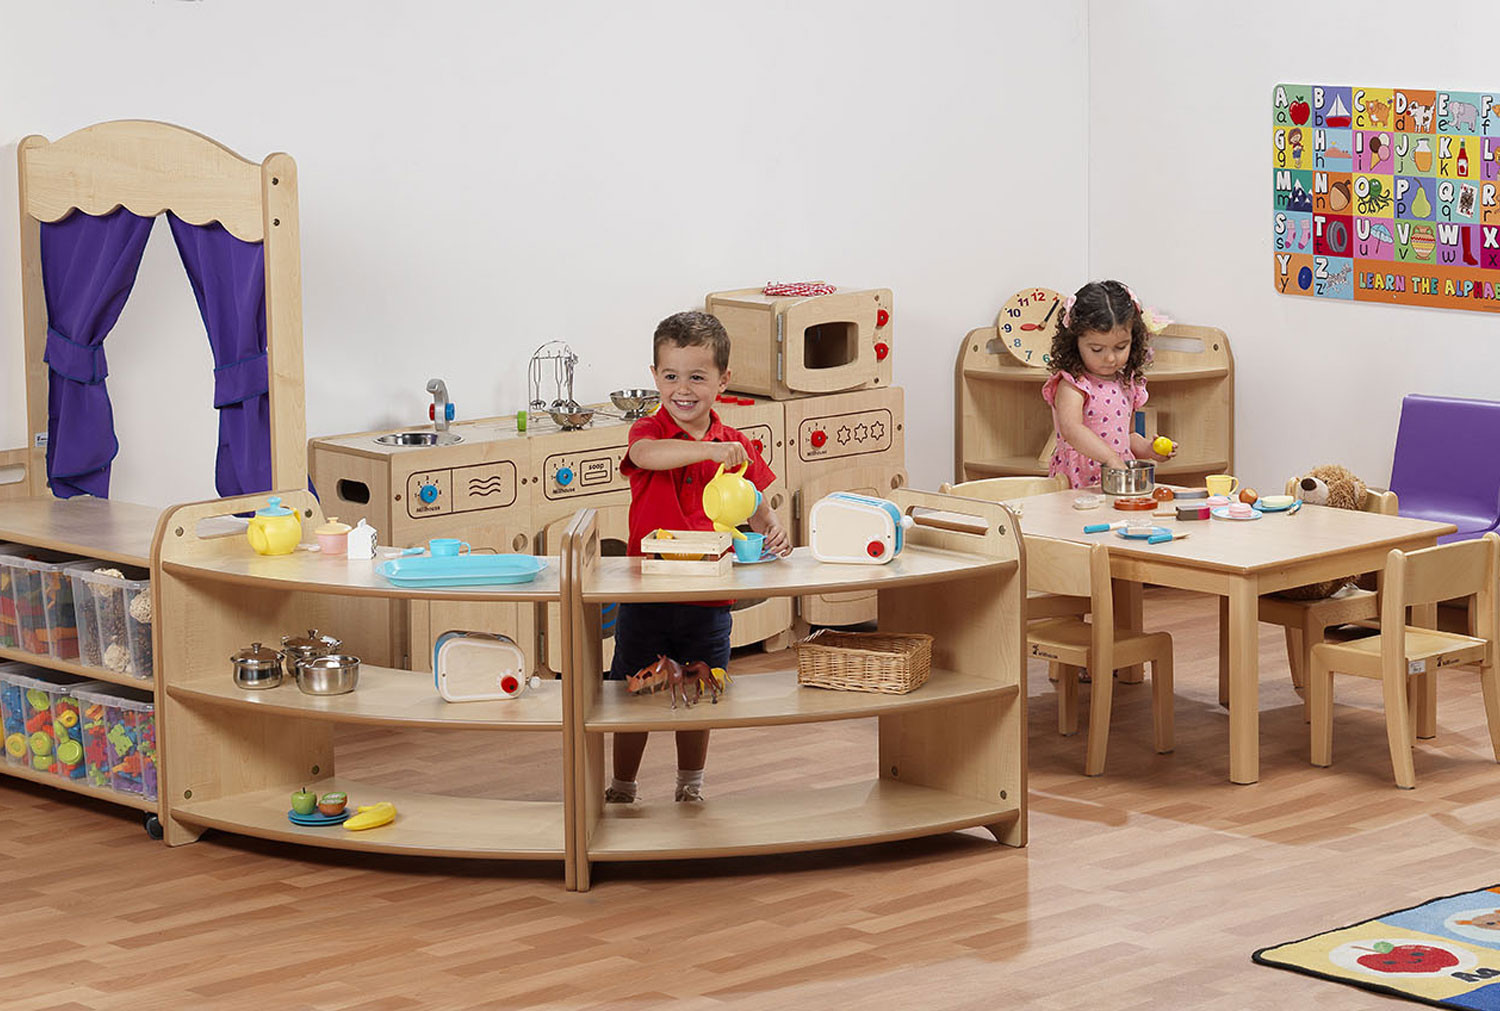 Playscapes Home Zone